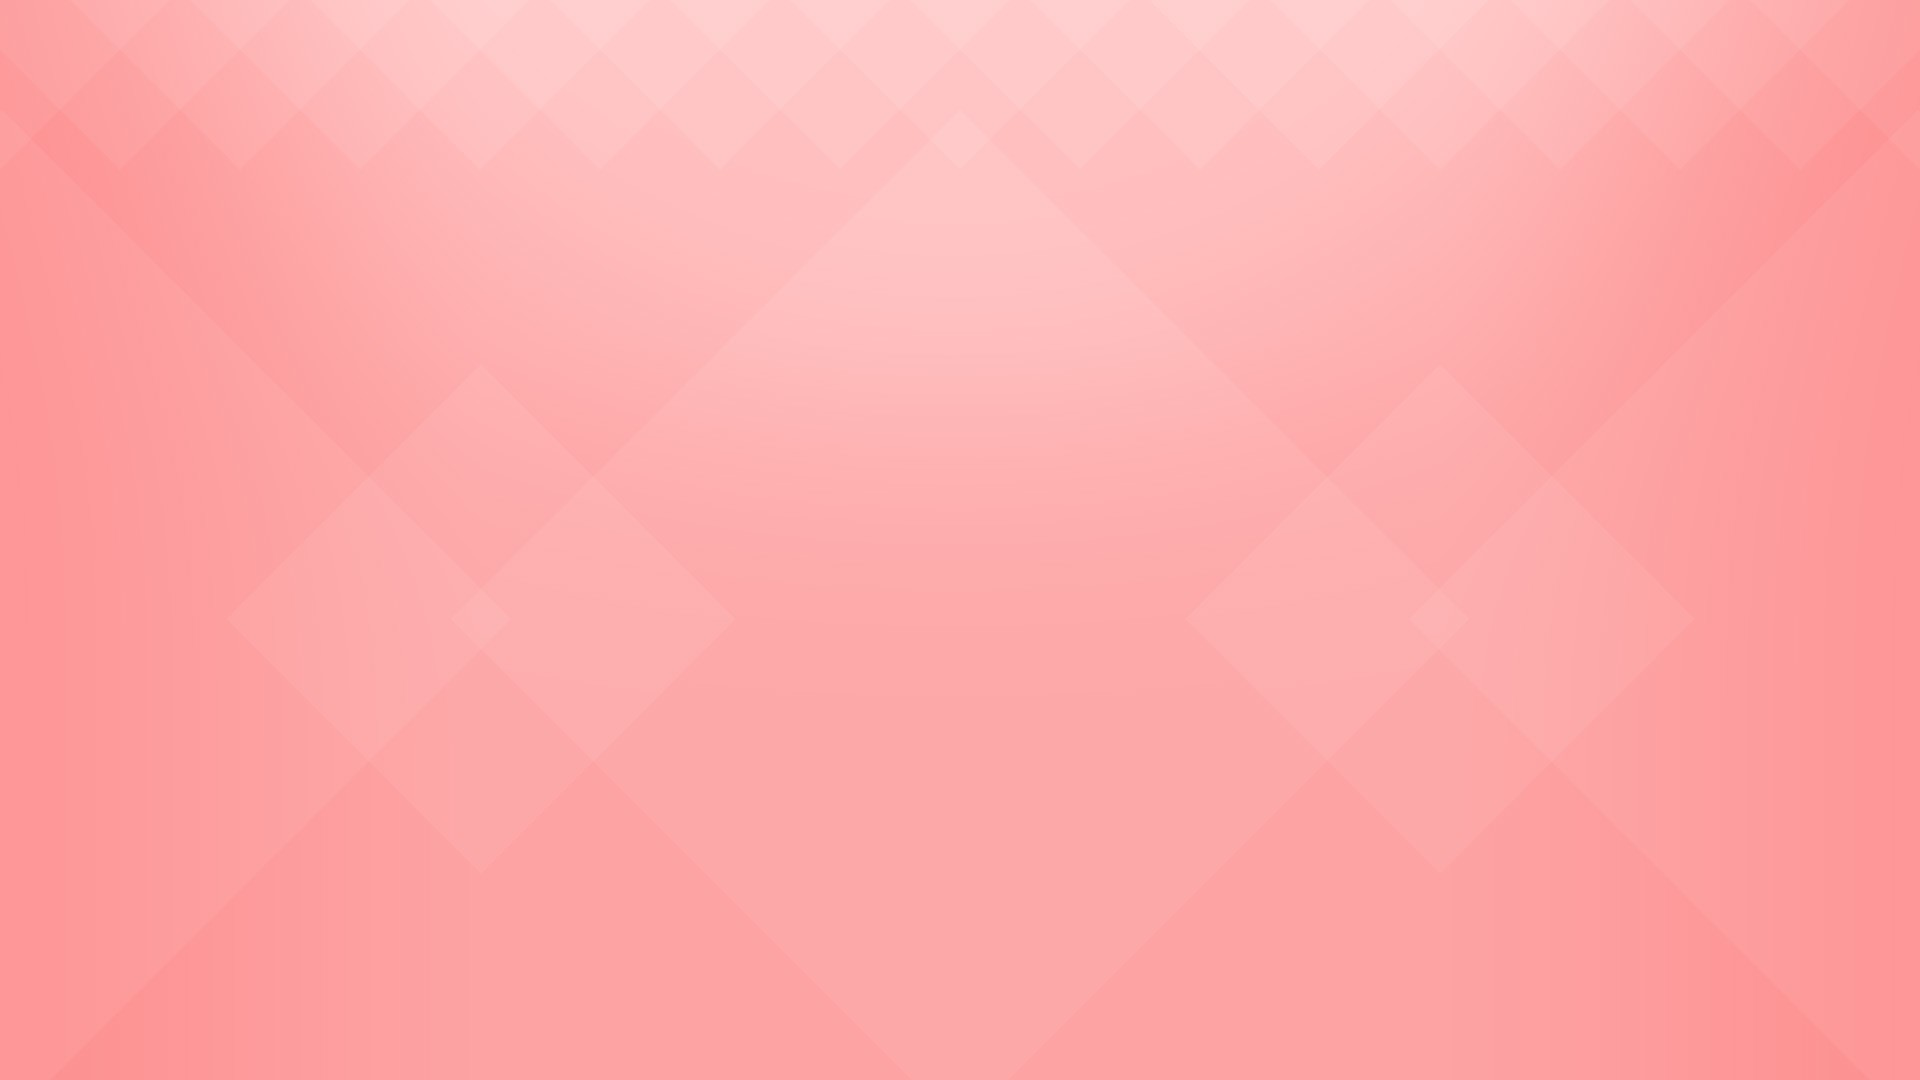 Pastel Background Images 45 Pictures